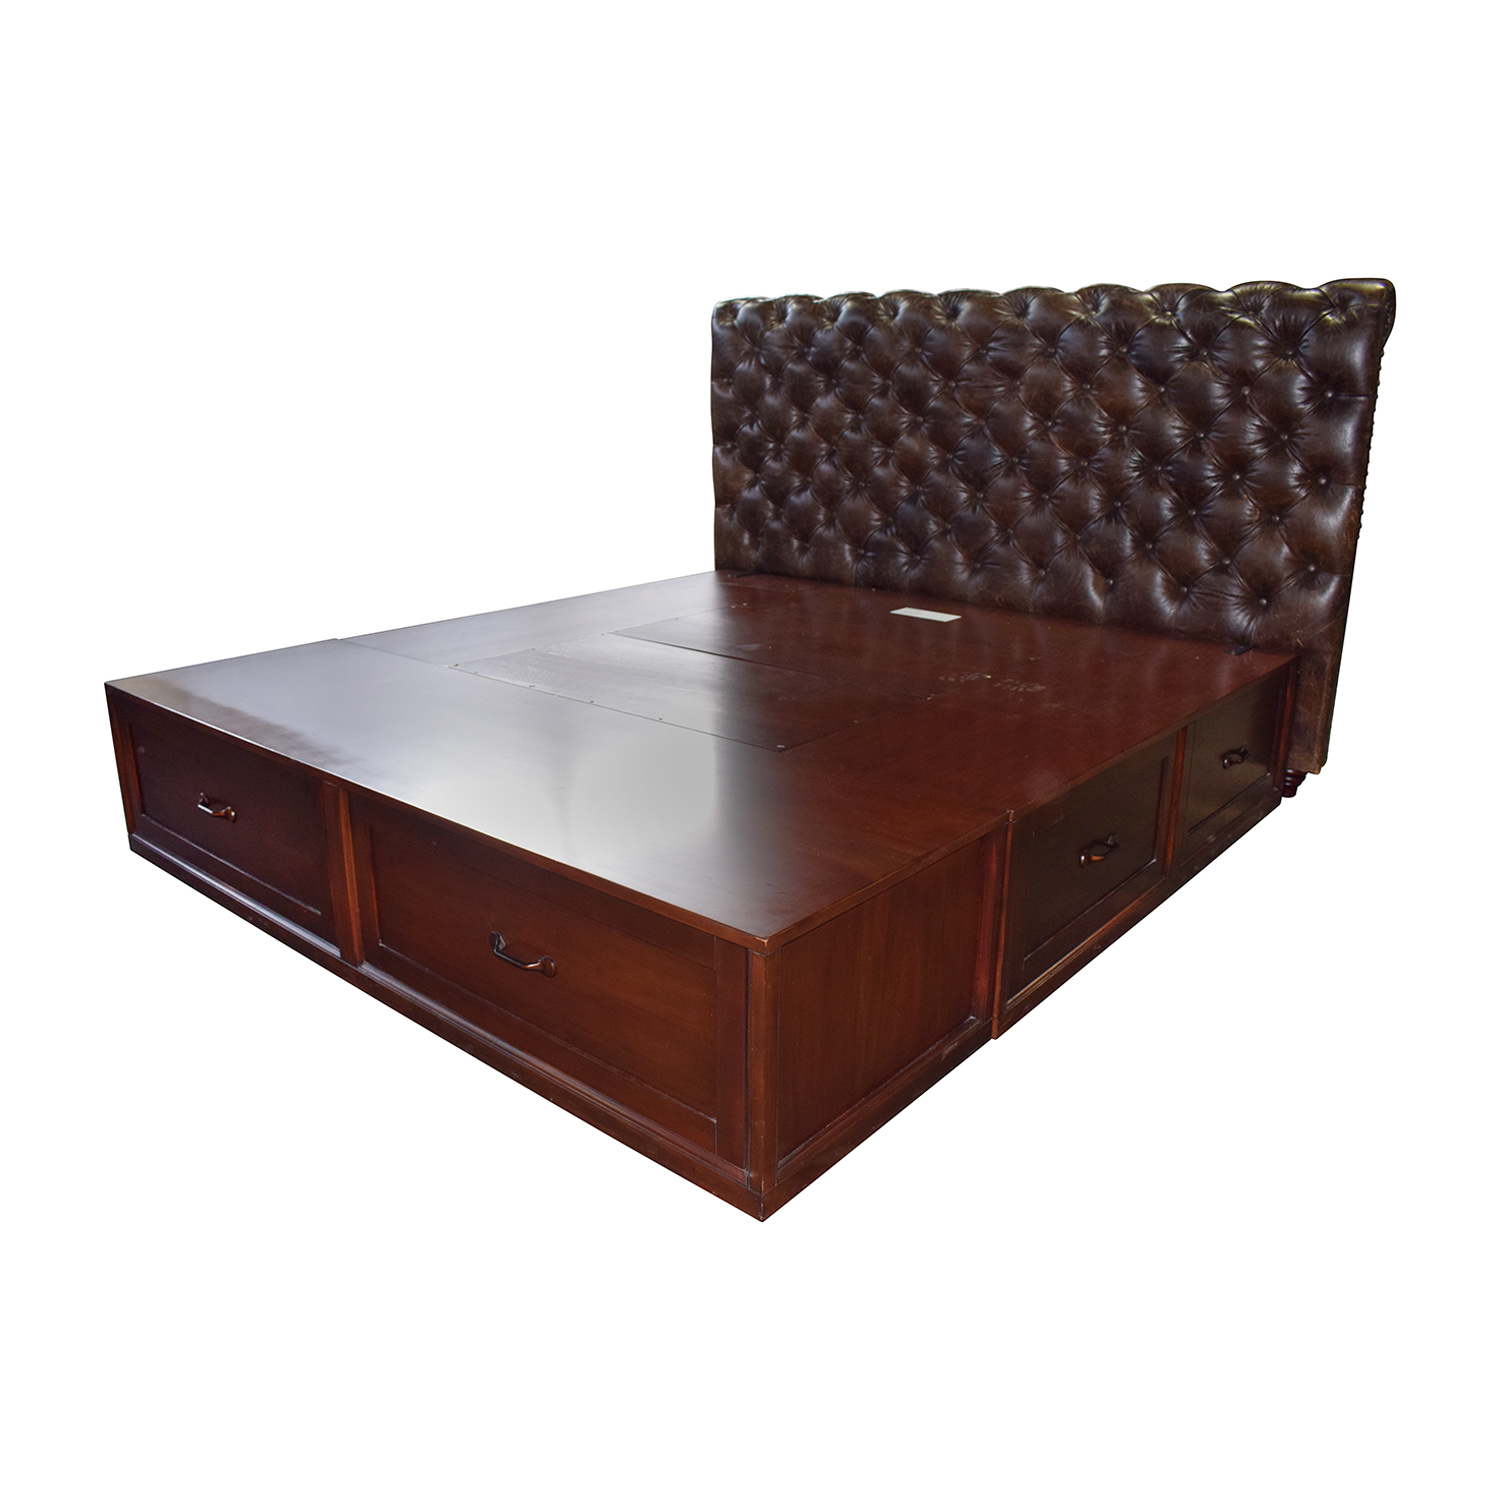 Pottery Barn Pottery Barn Stratton Brown Platform King Bed Frame with Storage and Tufted Leather Headboard dimensions